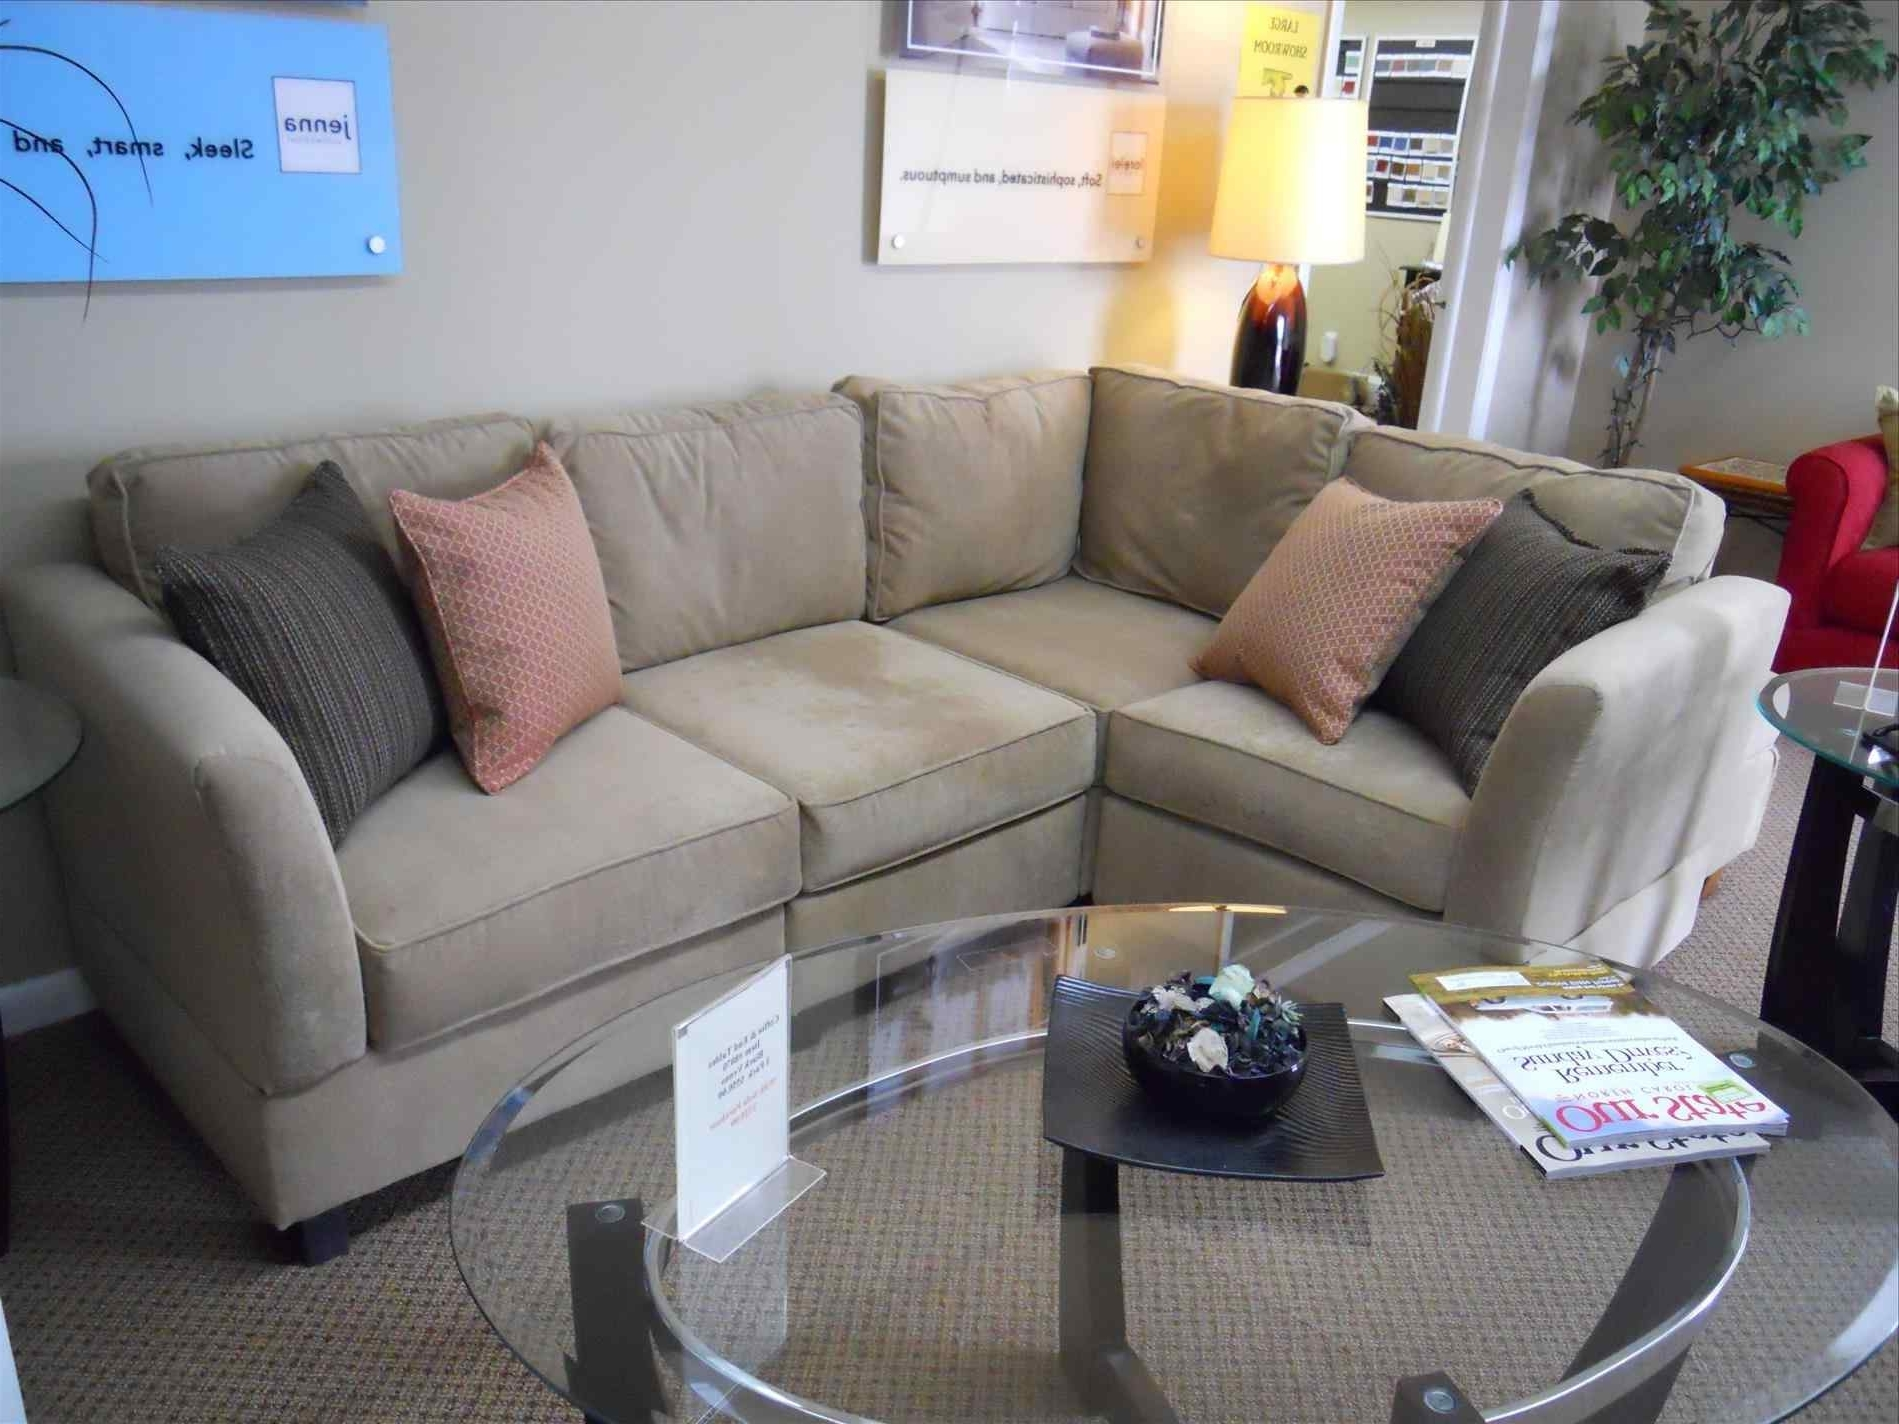 For Cozy Living Room Lazy Boy Chair Home Designs Lazy Sectional Pertaining To Current Sectional Sofas With Recliners For Small Spaces (View 4 of 15)